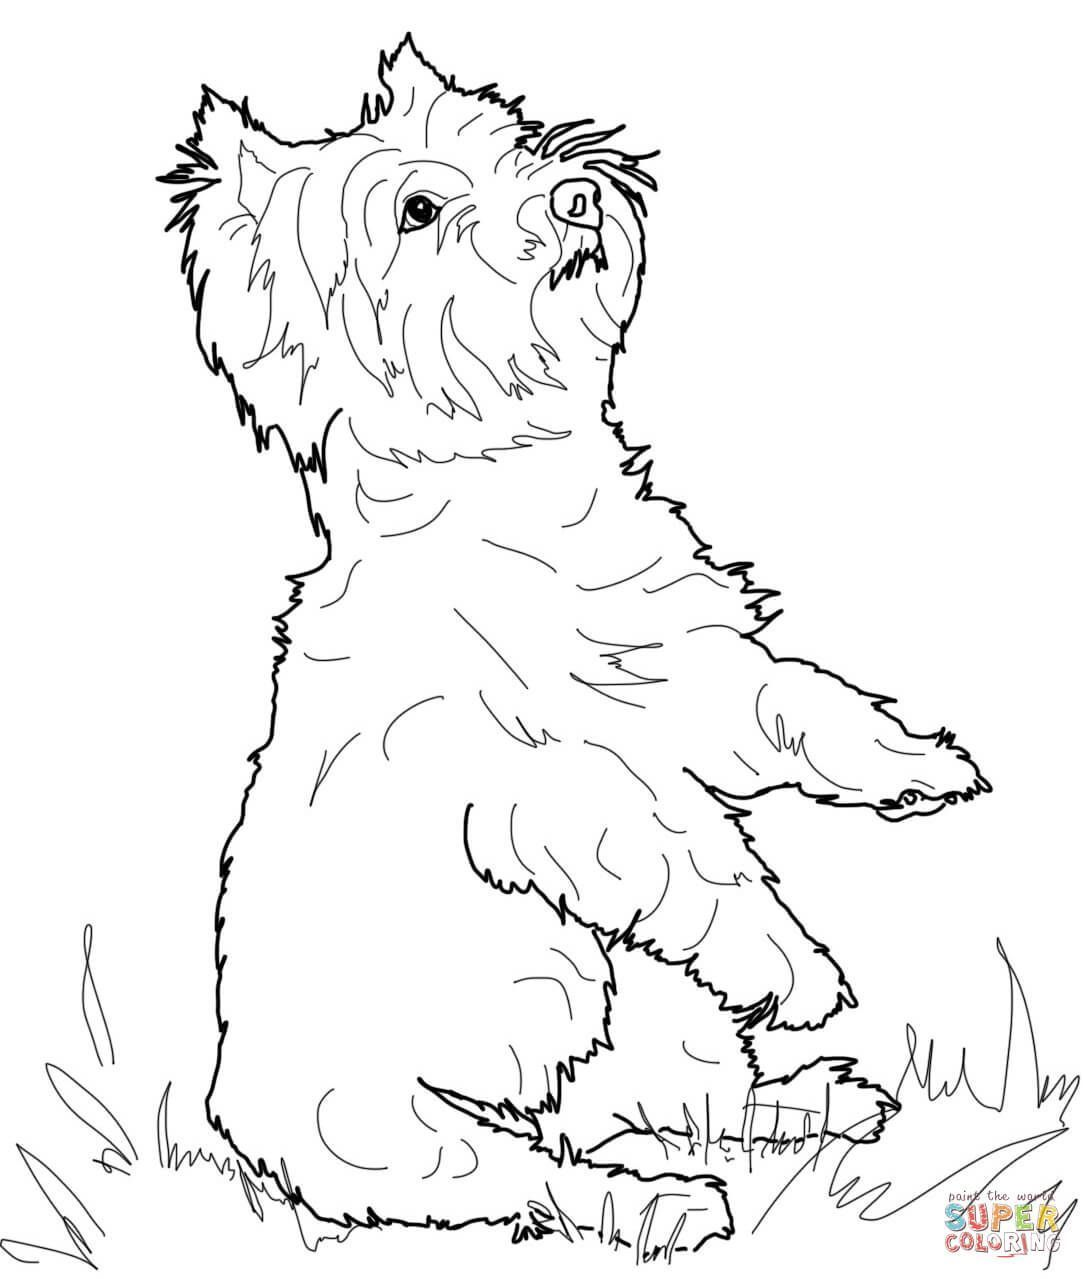 Yorkshire Terrier Or Yorkie Coloring Page Free Printable Yorkiecolors Yorkieadult Dog Coloring Page Dog Coloring Book Coloring Pages